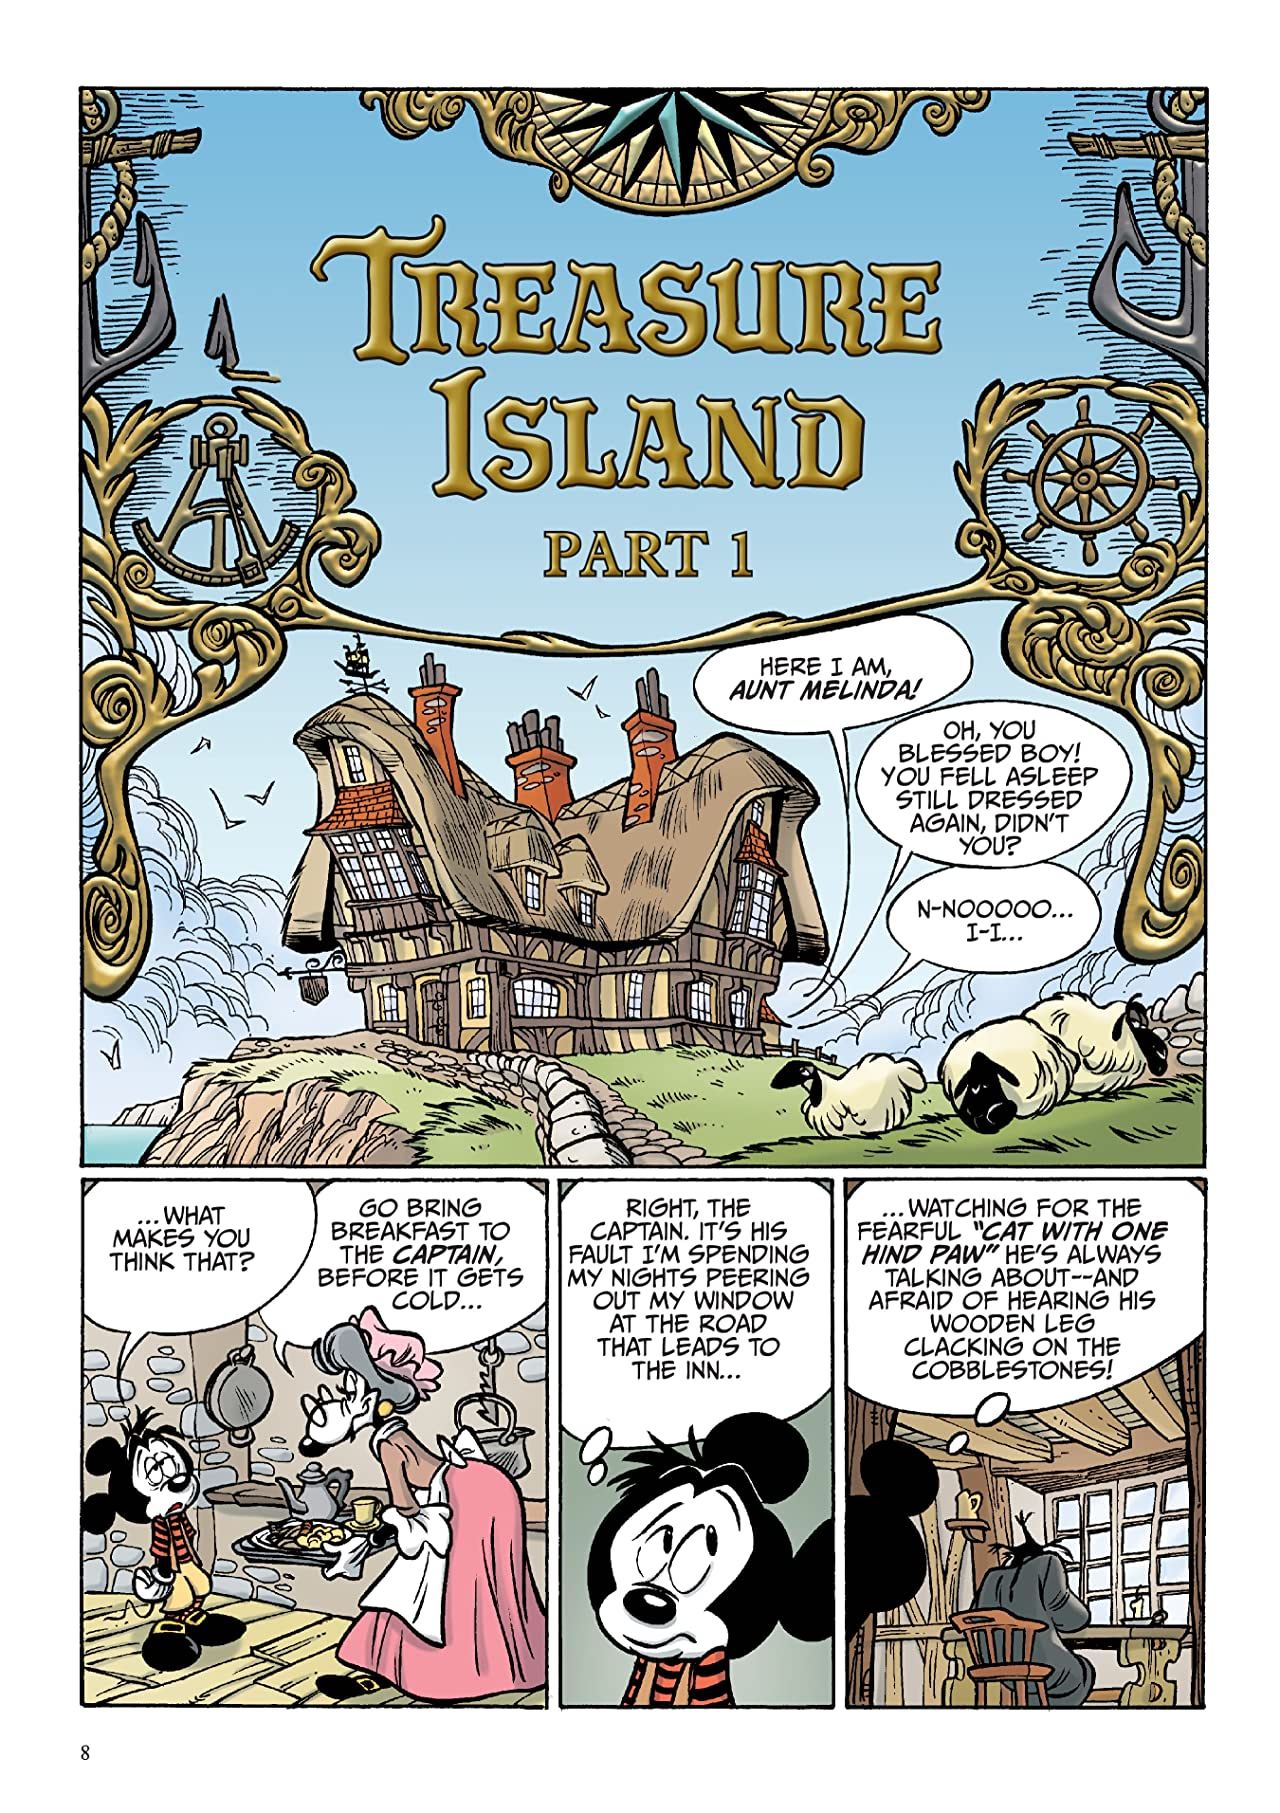 Disney Treasure Island, starring Mickey Mouse